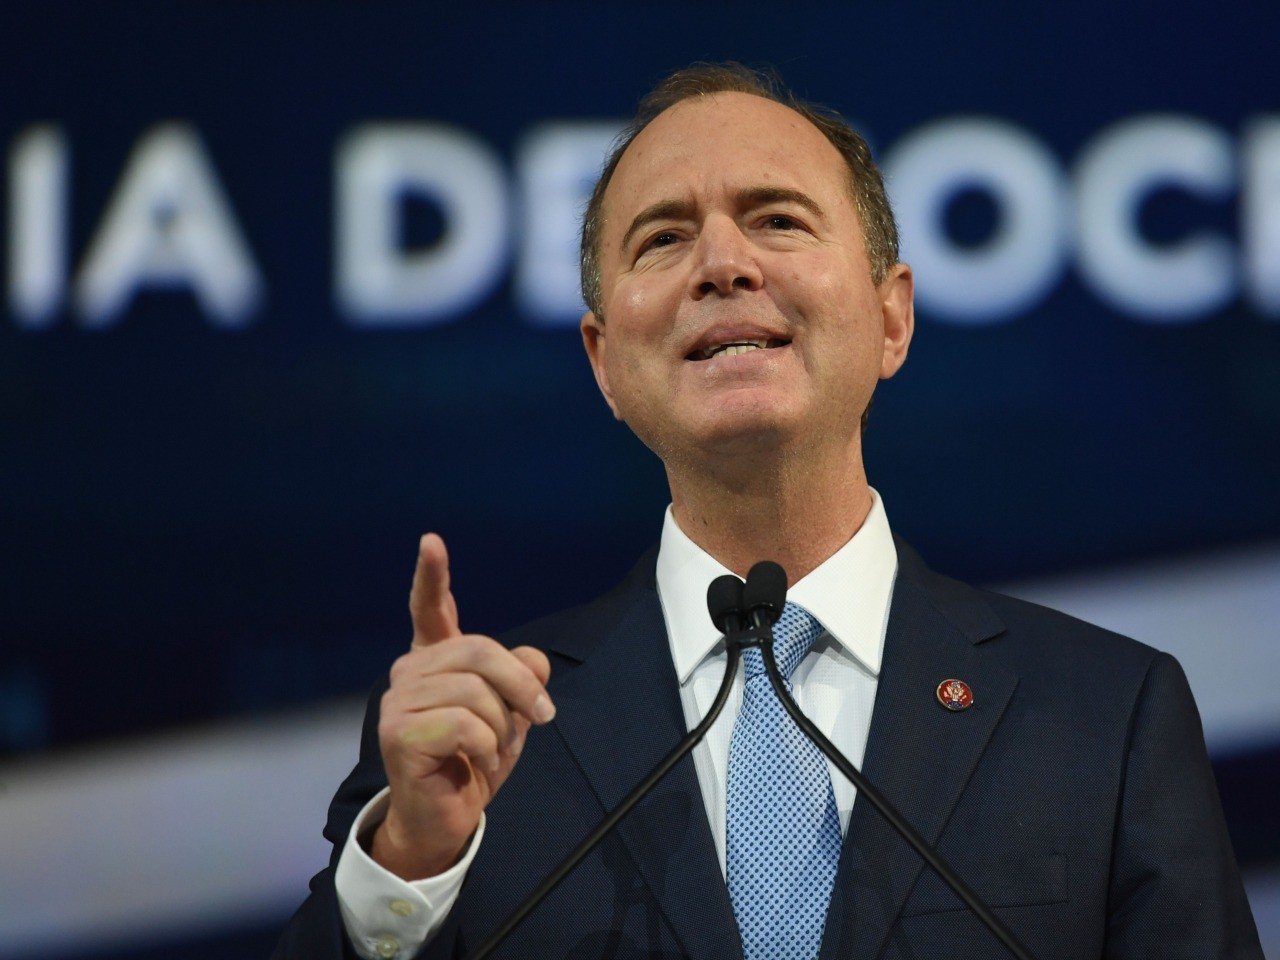 Adam Schiff: Hunter Biden Testimony Would Be 'Illegitimate'